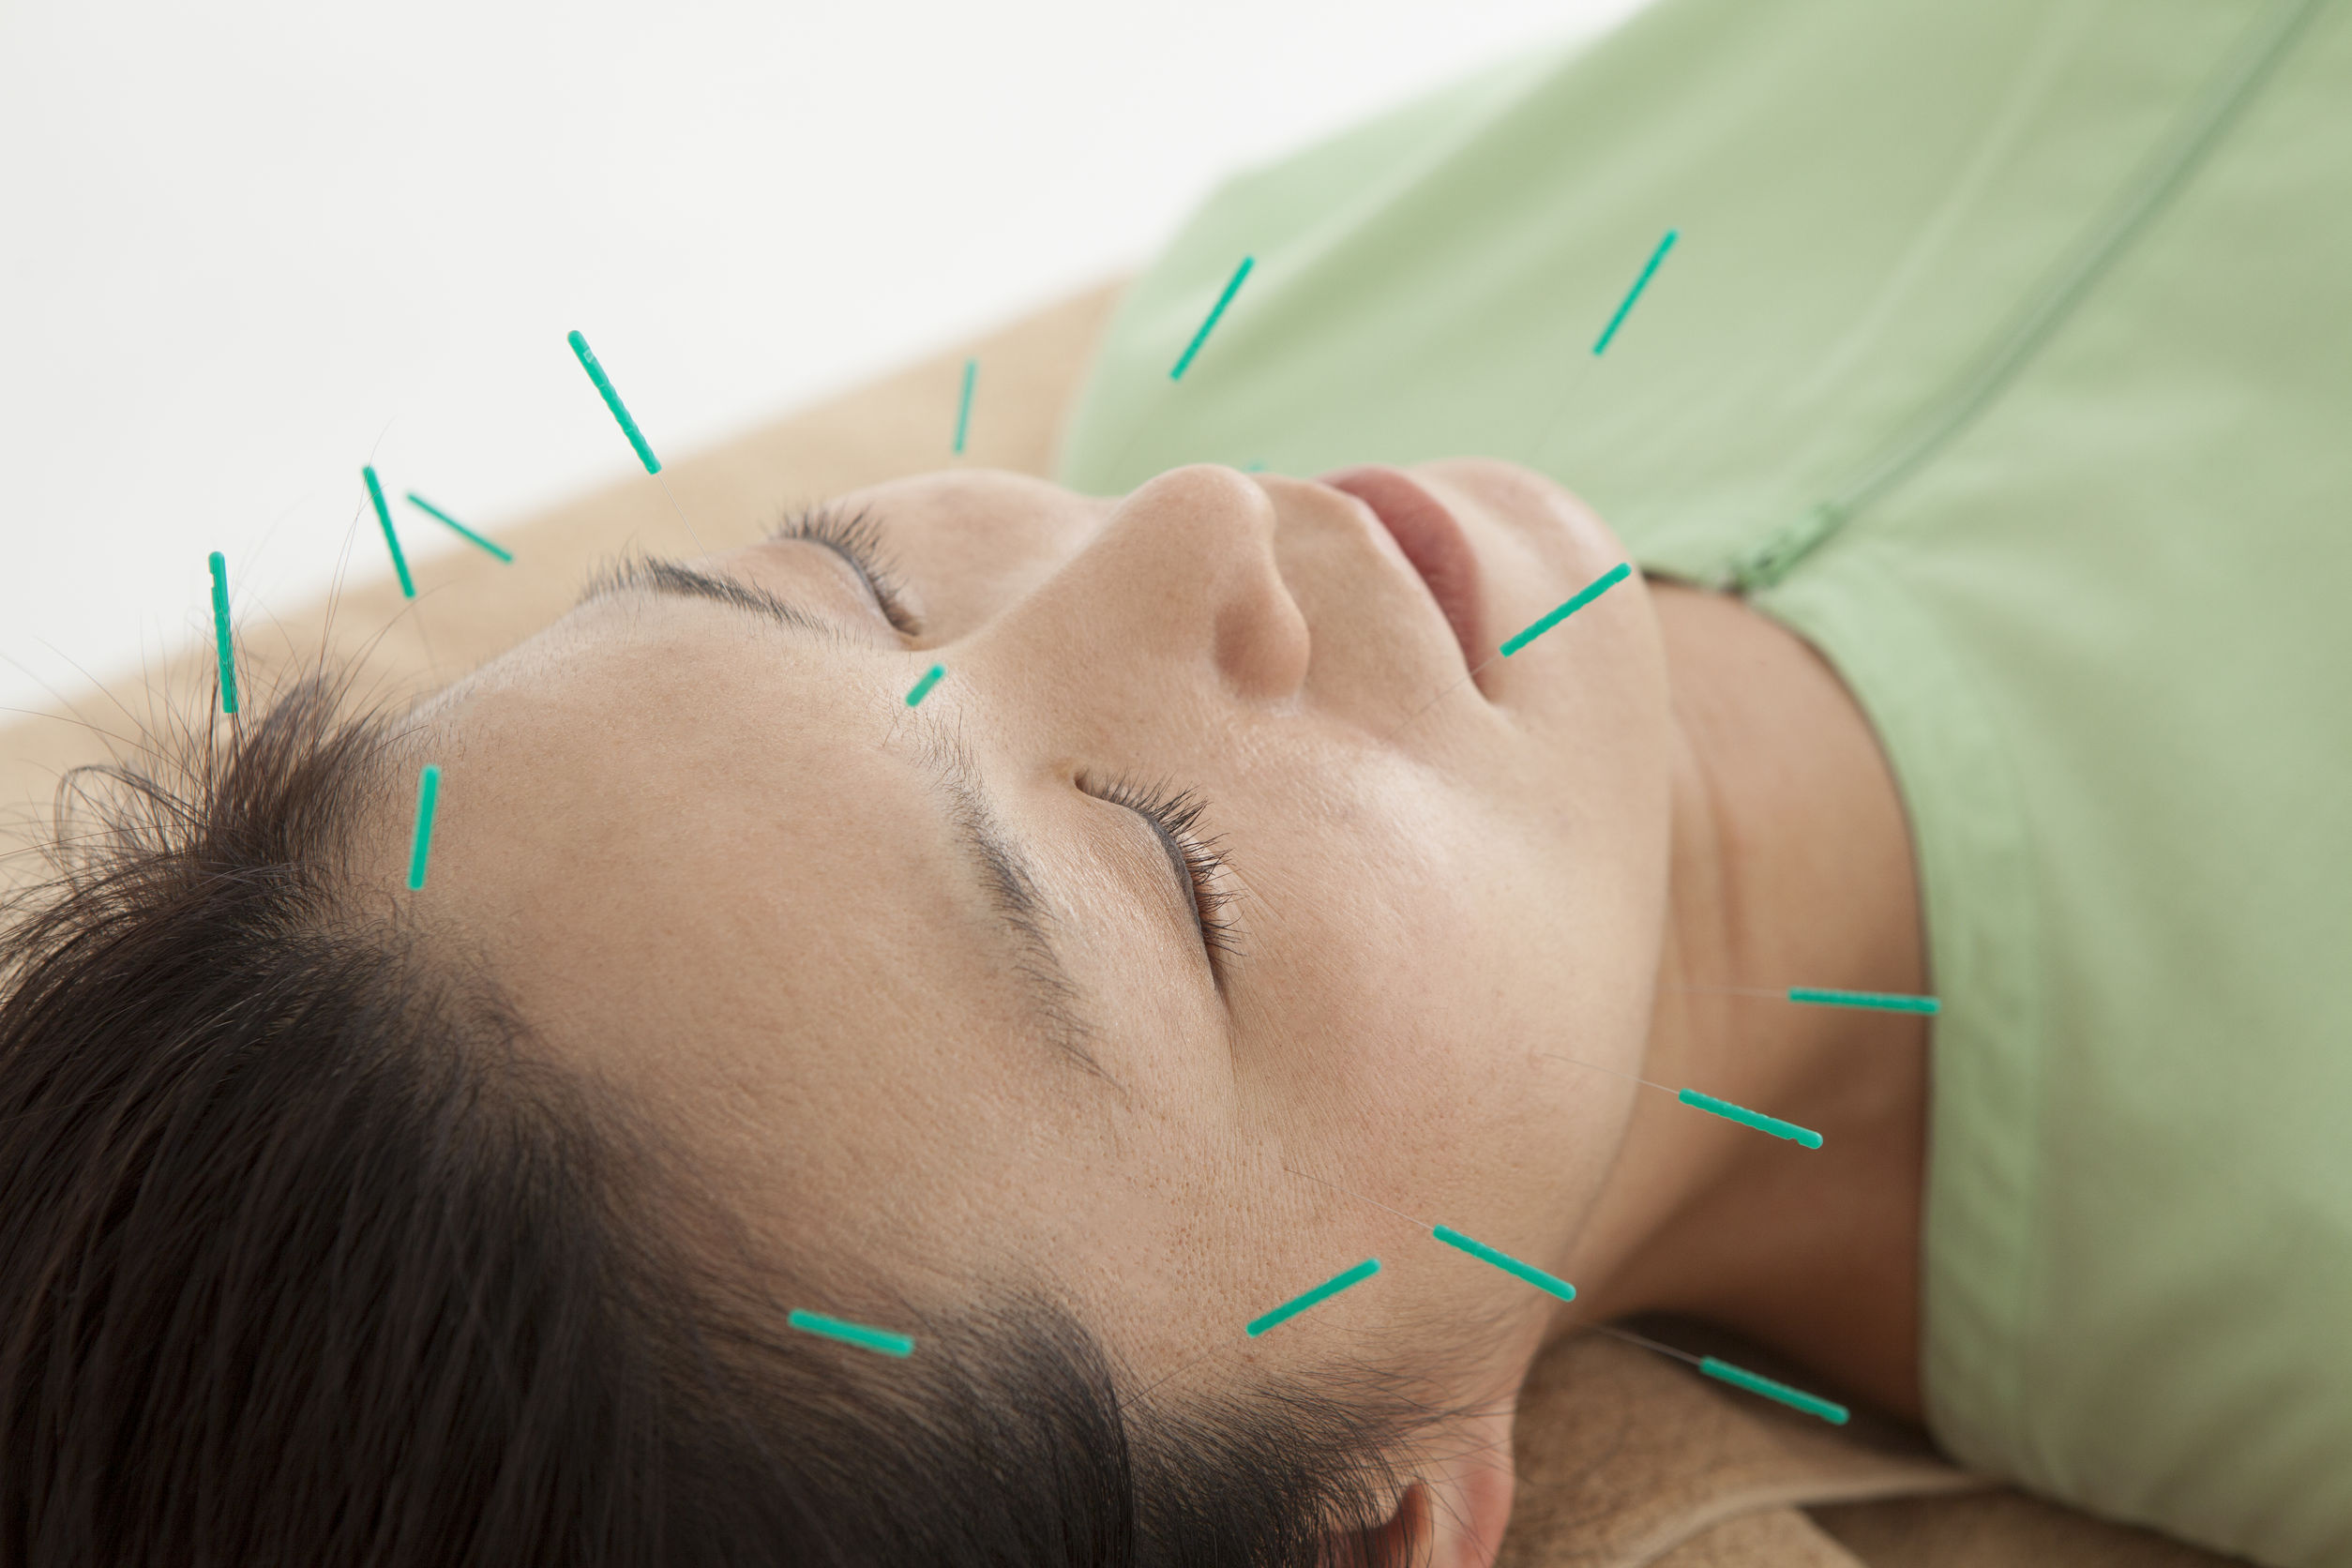 How To Get The Most Out Of Acupuncture For Your Anxiety